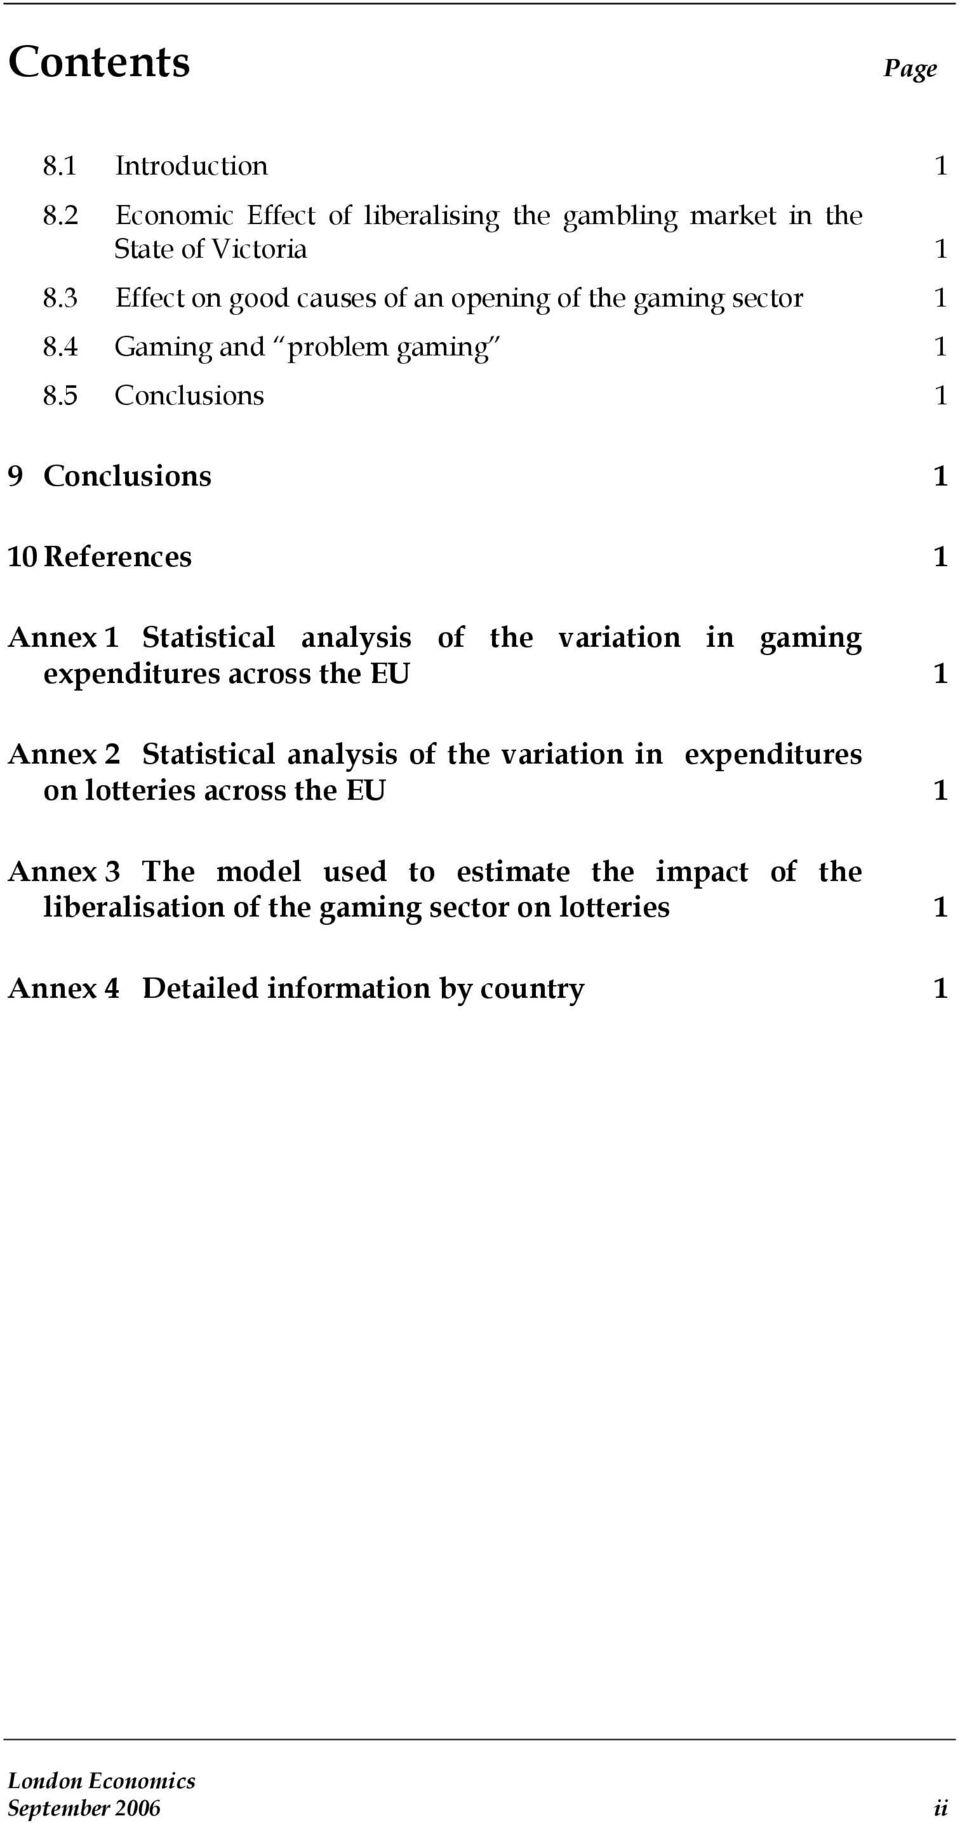 5 Conclusions 1 9 Conclusions 1 10 References 1 Annex 1 Statistical analysis of the variation in gaming expenditures across the EU 1 Annex 2